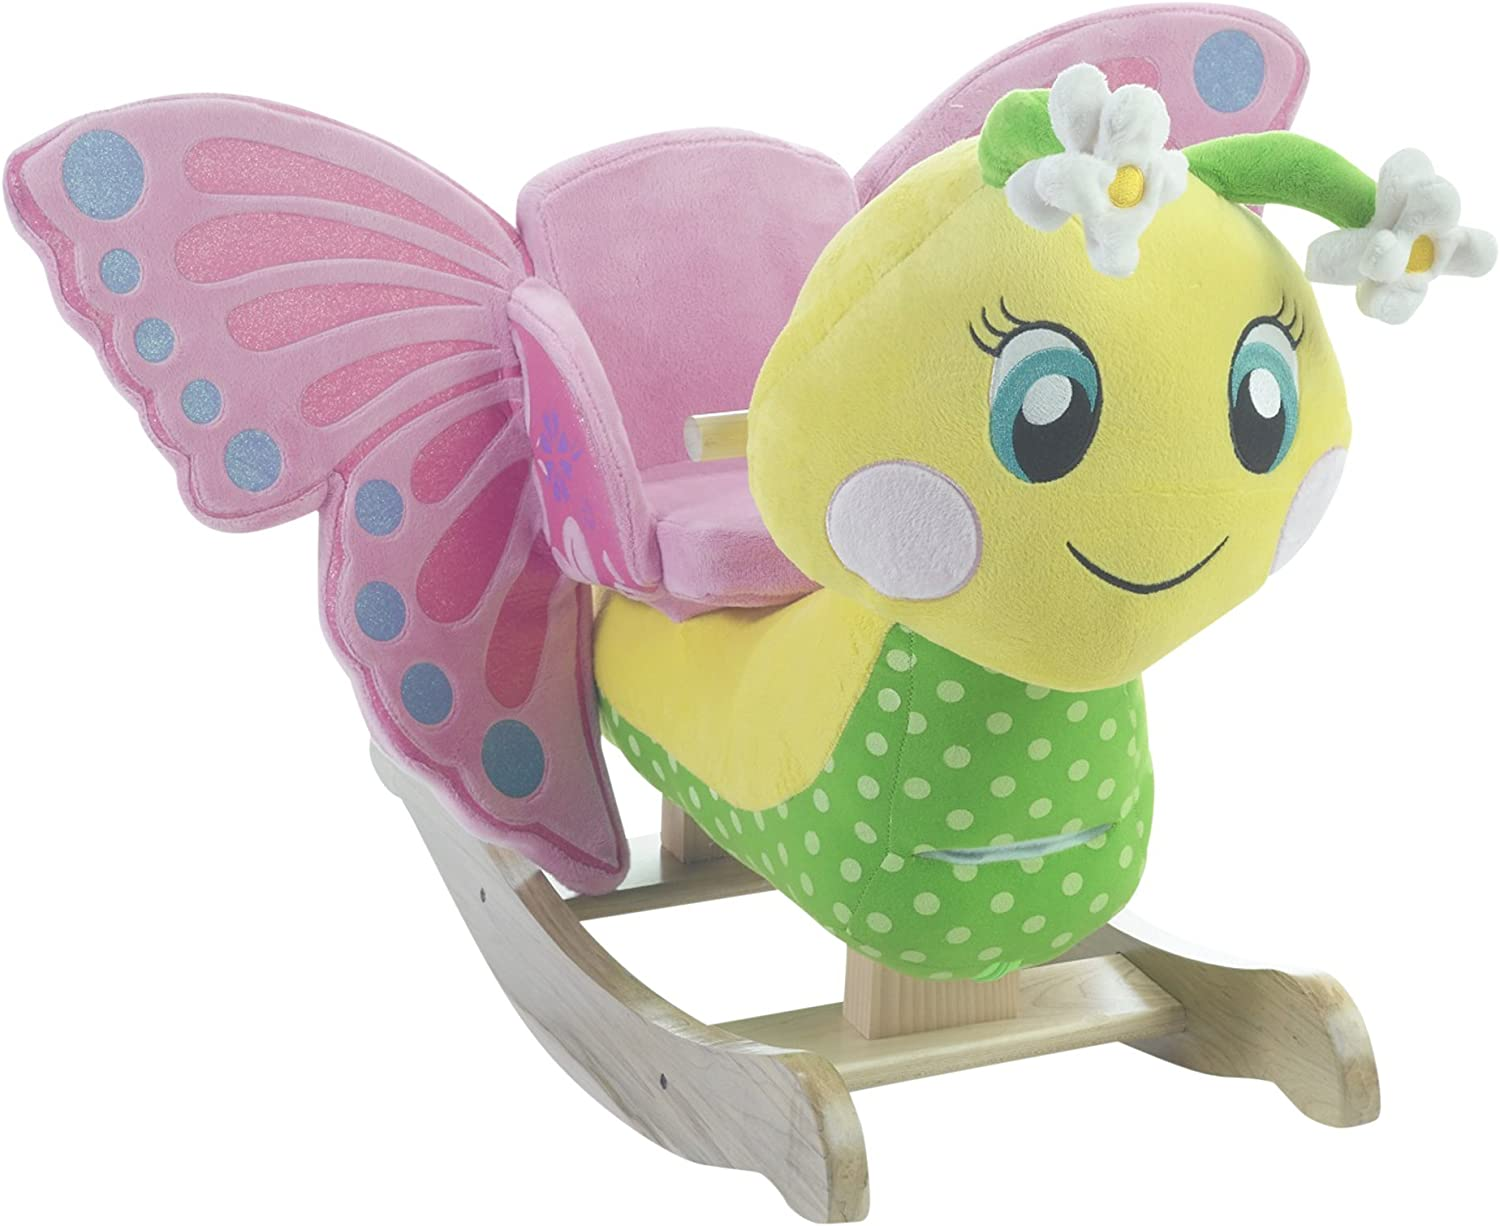 Rockabye Flutter Butterfly Rocker Ride On